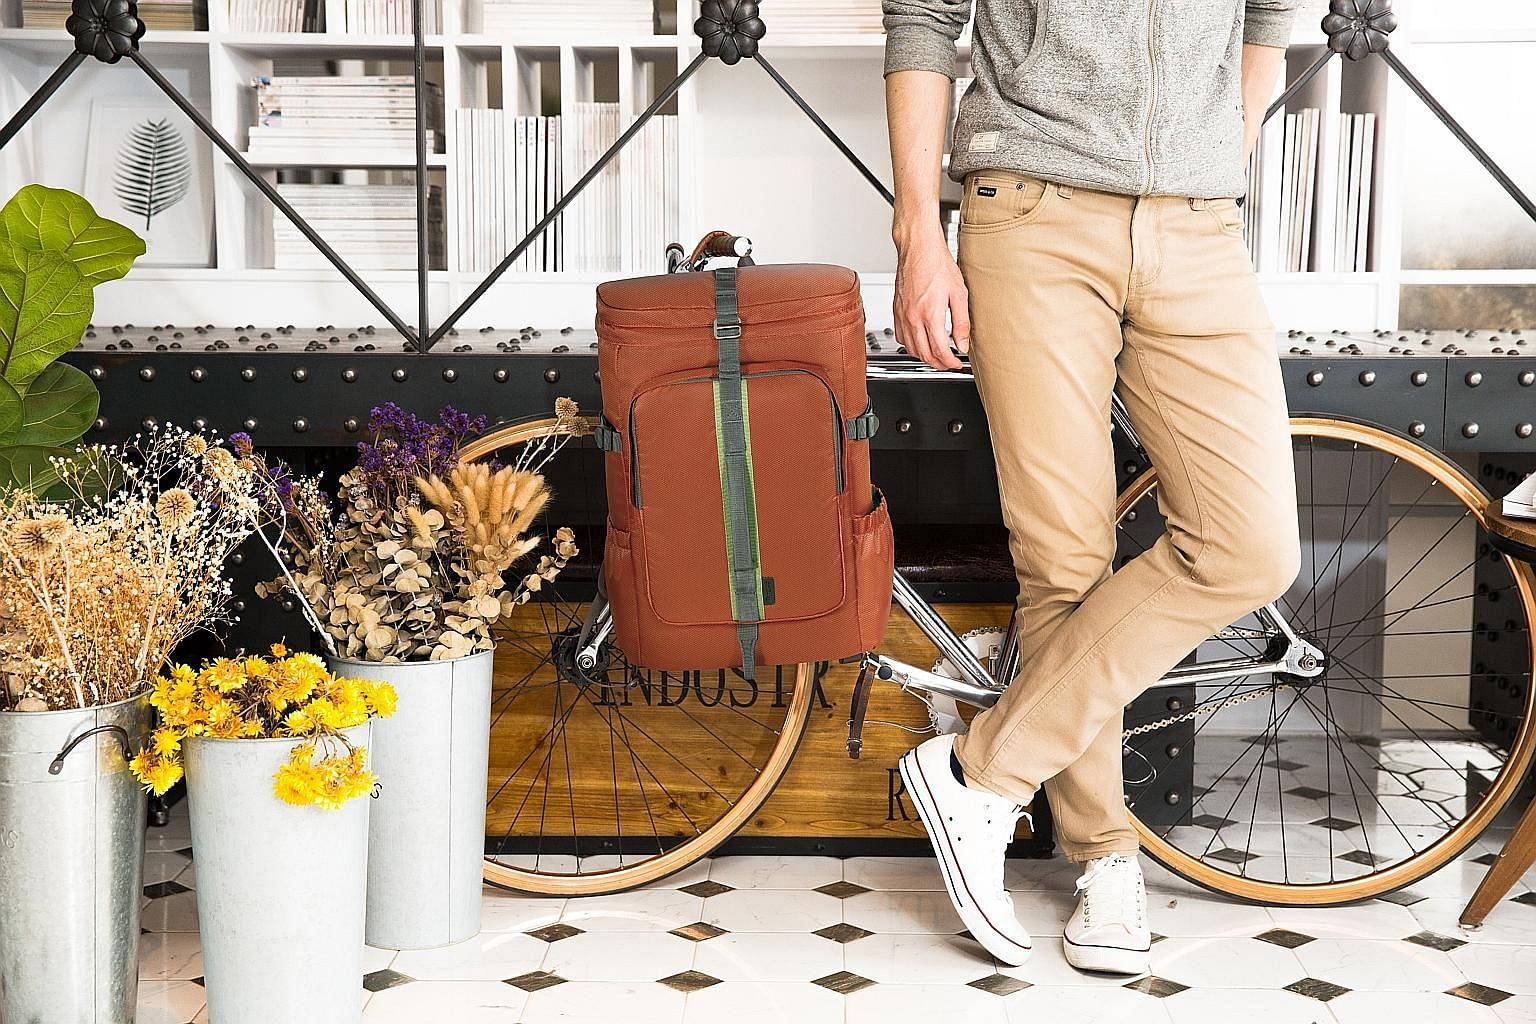 The Targus Seoul Backpack is available in two sizes to fit 14-inch and 15.6-inch laptops.